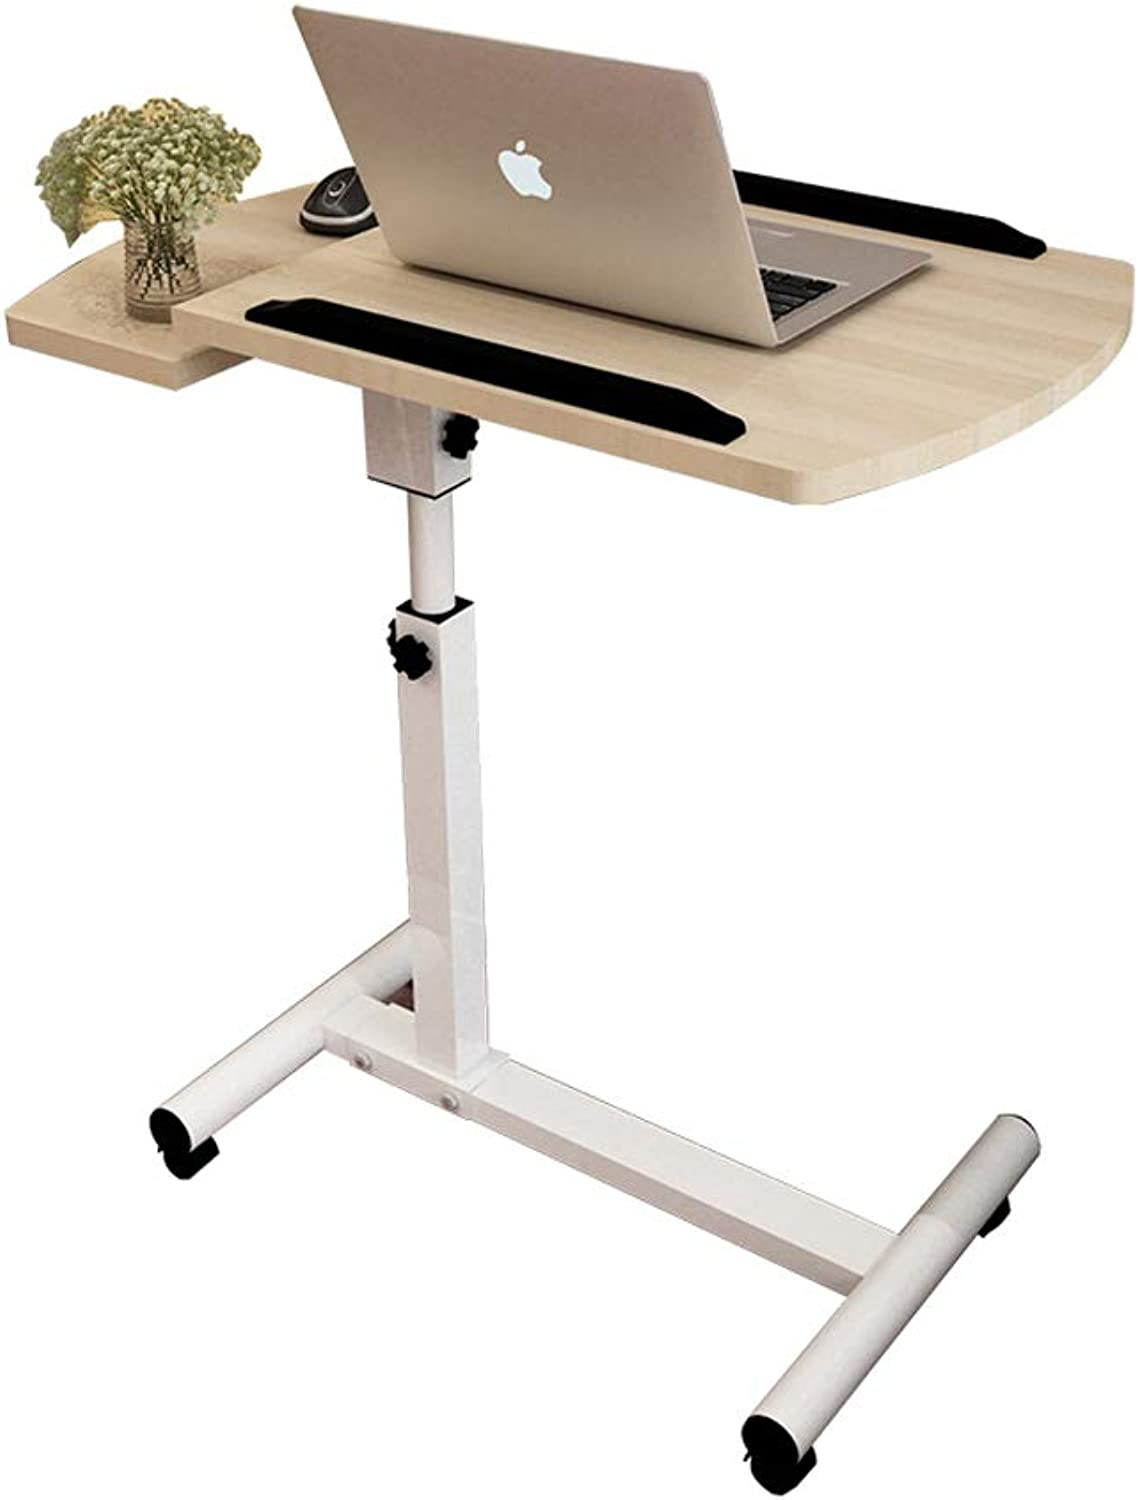 Laptop Desk Bed Learning with Household Lifting Foldable Moving Bedside Table